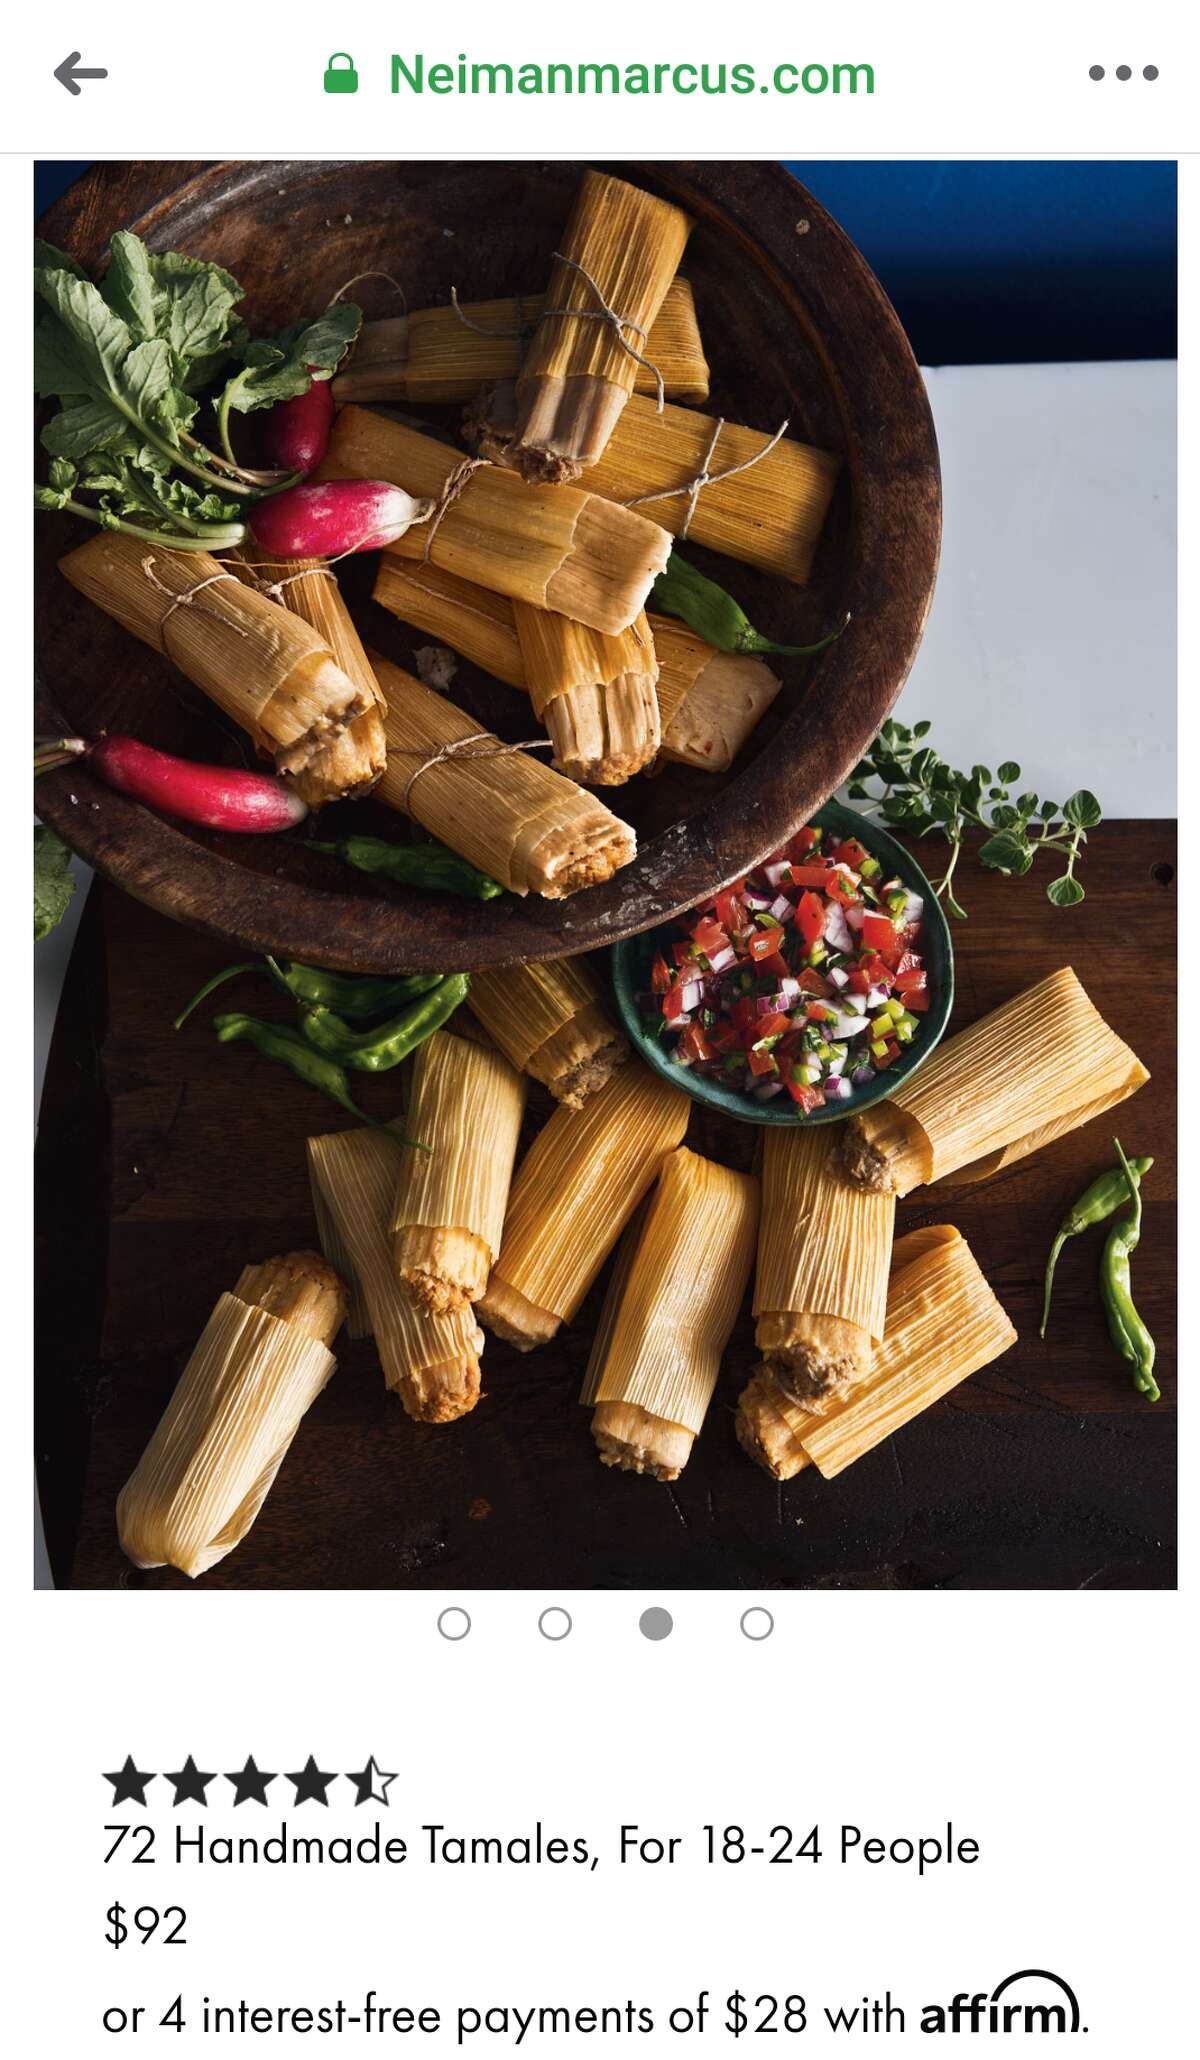 Neiman Marcus selling tamales for $92.